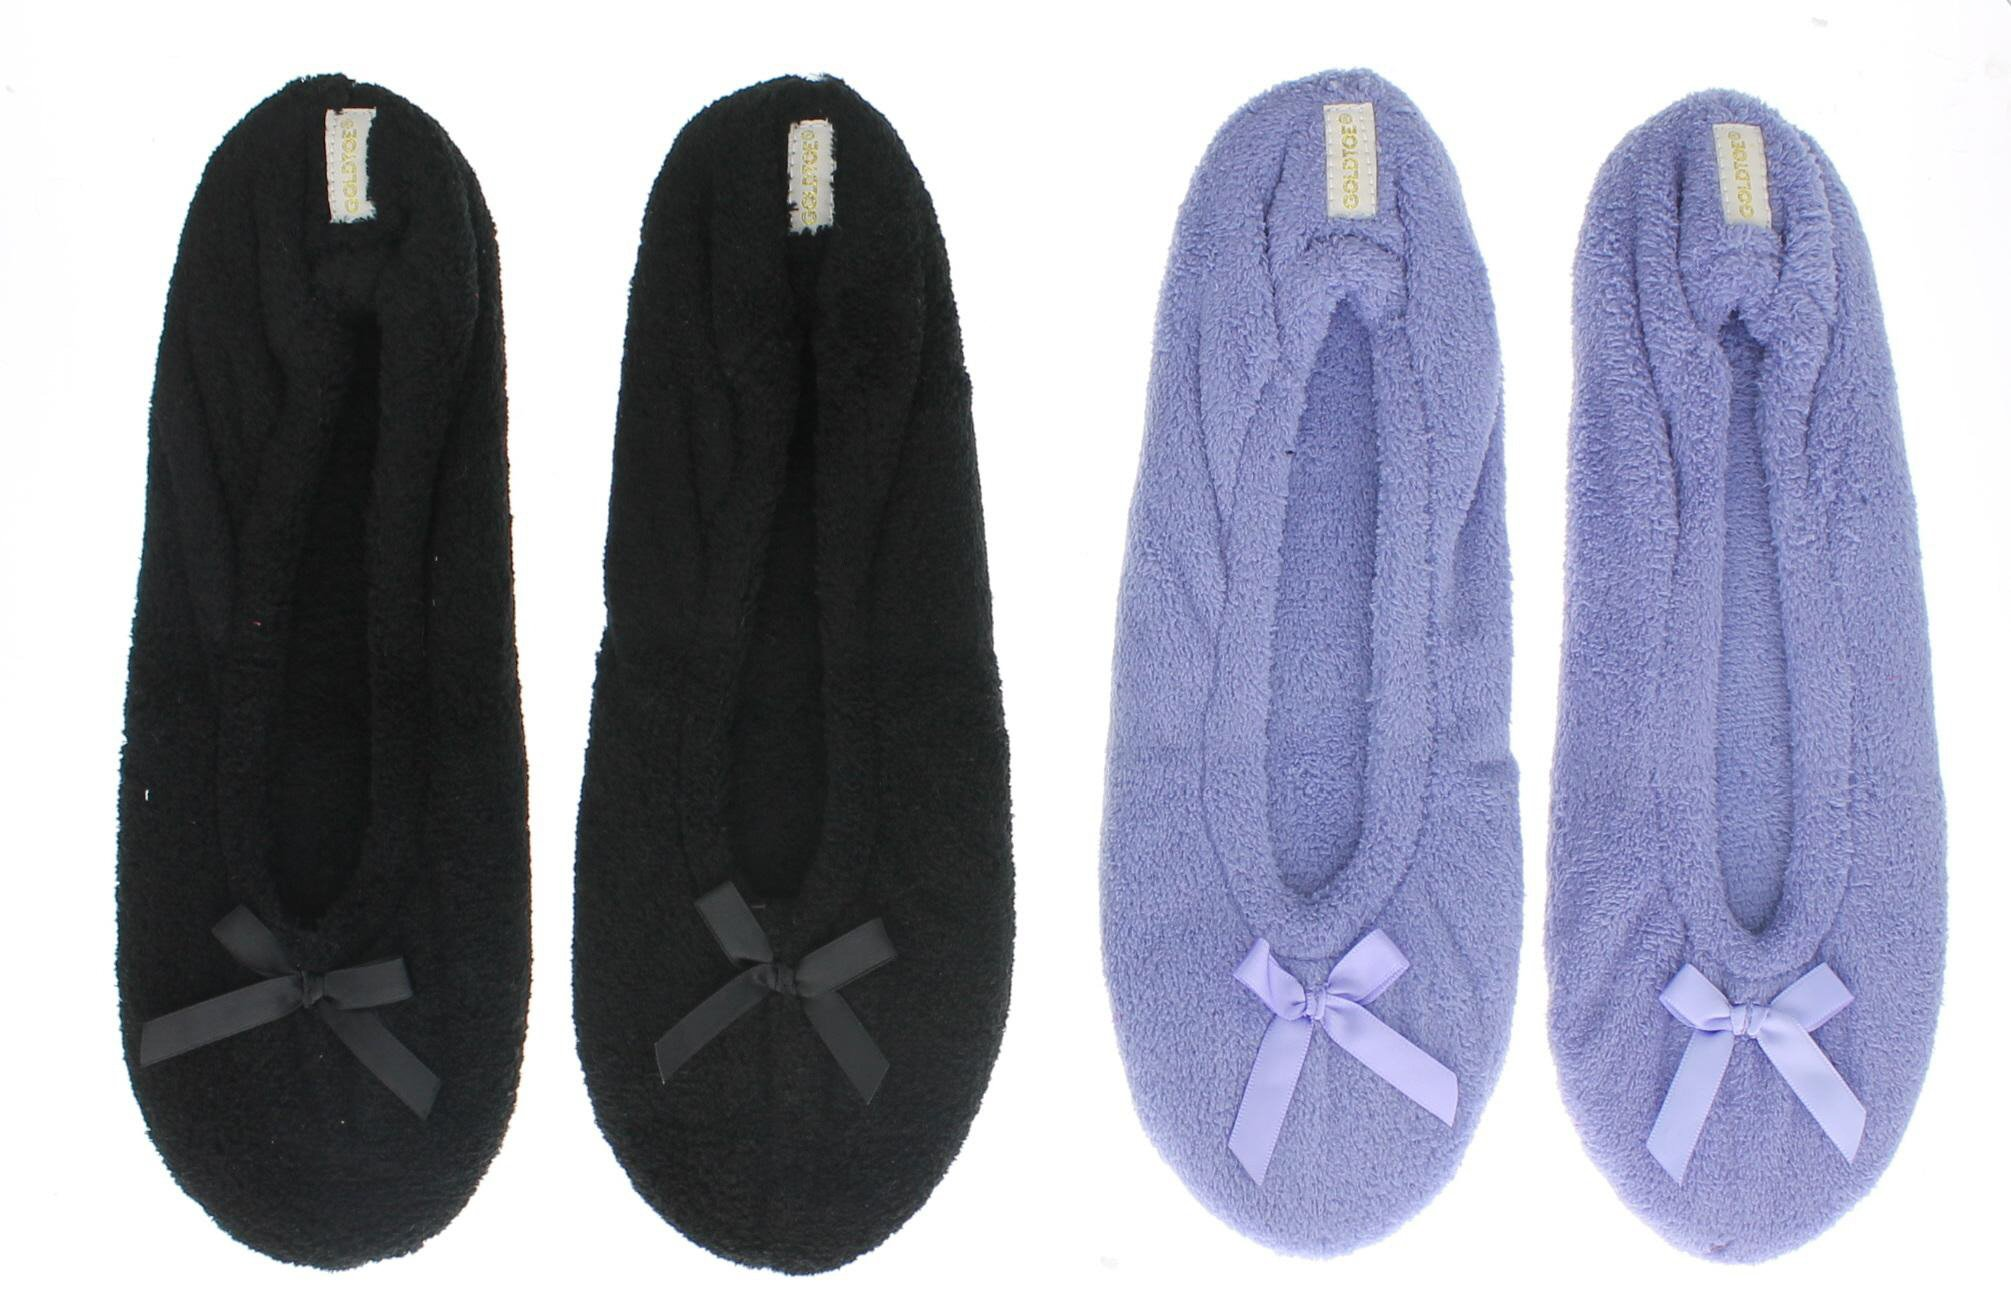 Gold Toe Women's Cora 2 Pairs Microterry Ballerina House Slippers, Casual Non-Slip Elastic Stretch Scuffs Black/Periwinkle XL 10-11